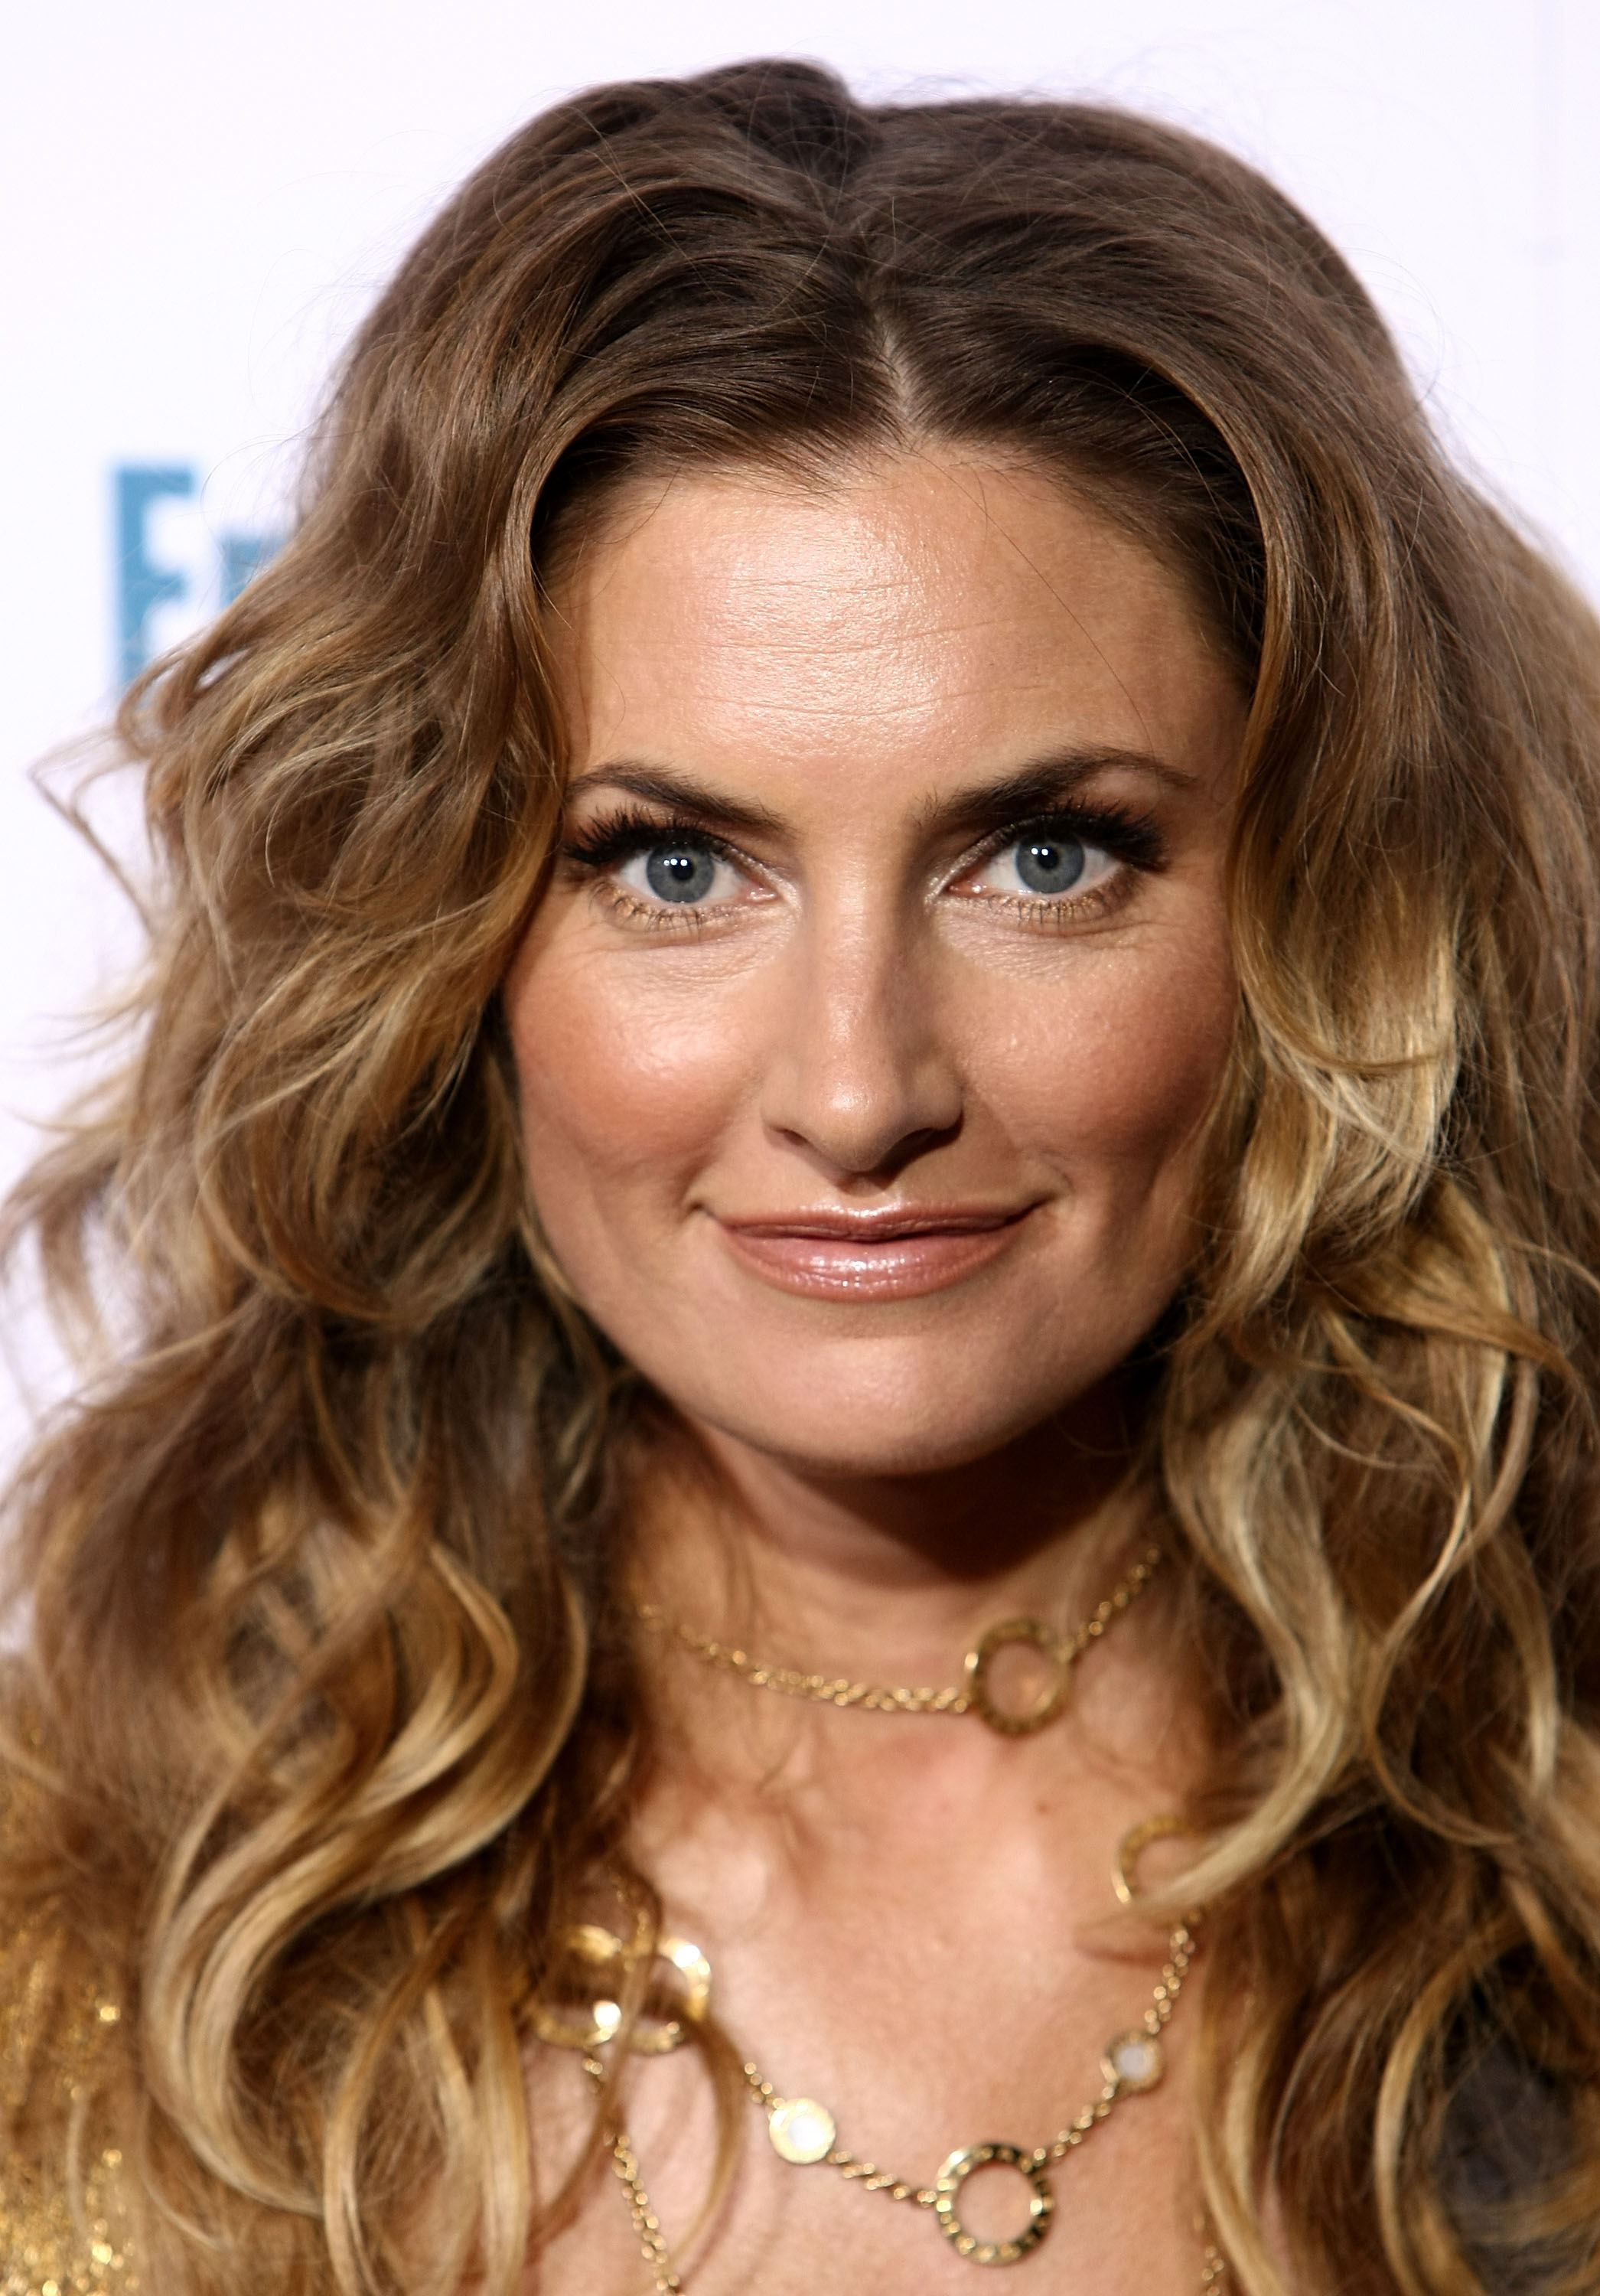 99434_Celebutopia-Madchen_Amick-Entertainment_Weekly23s_Sixth_Annual_Pre-Emmy_Celebration_party-03_122_973lo.jpg